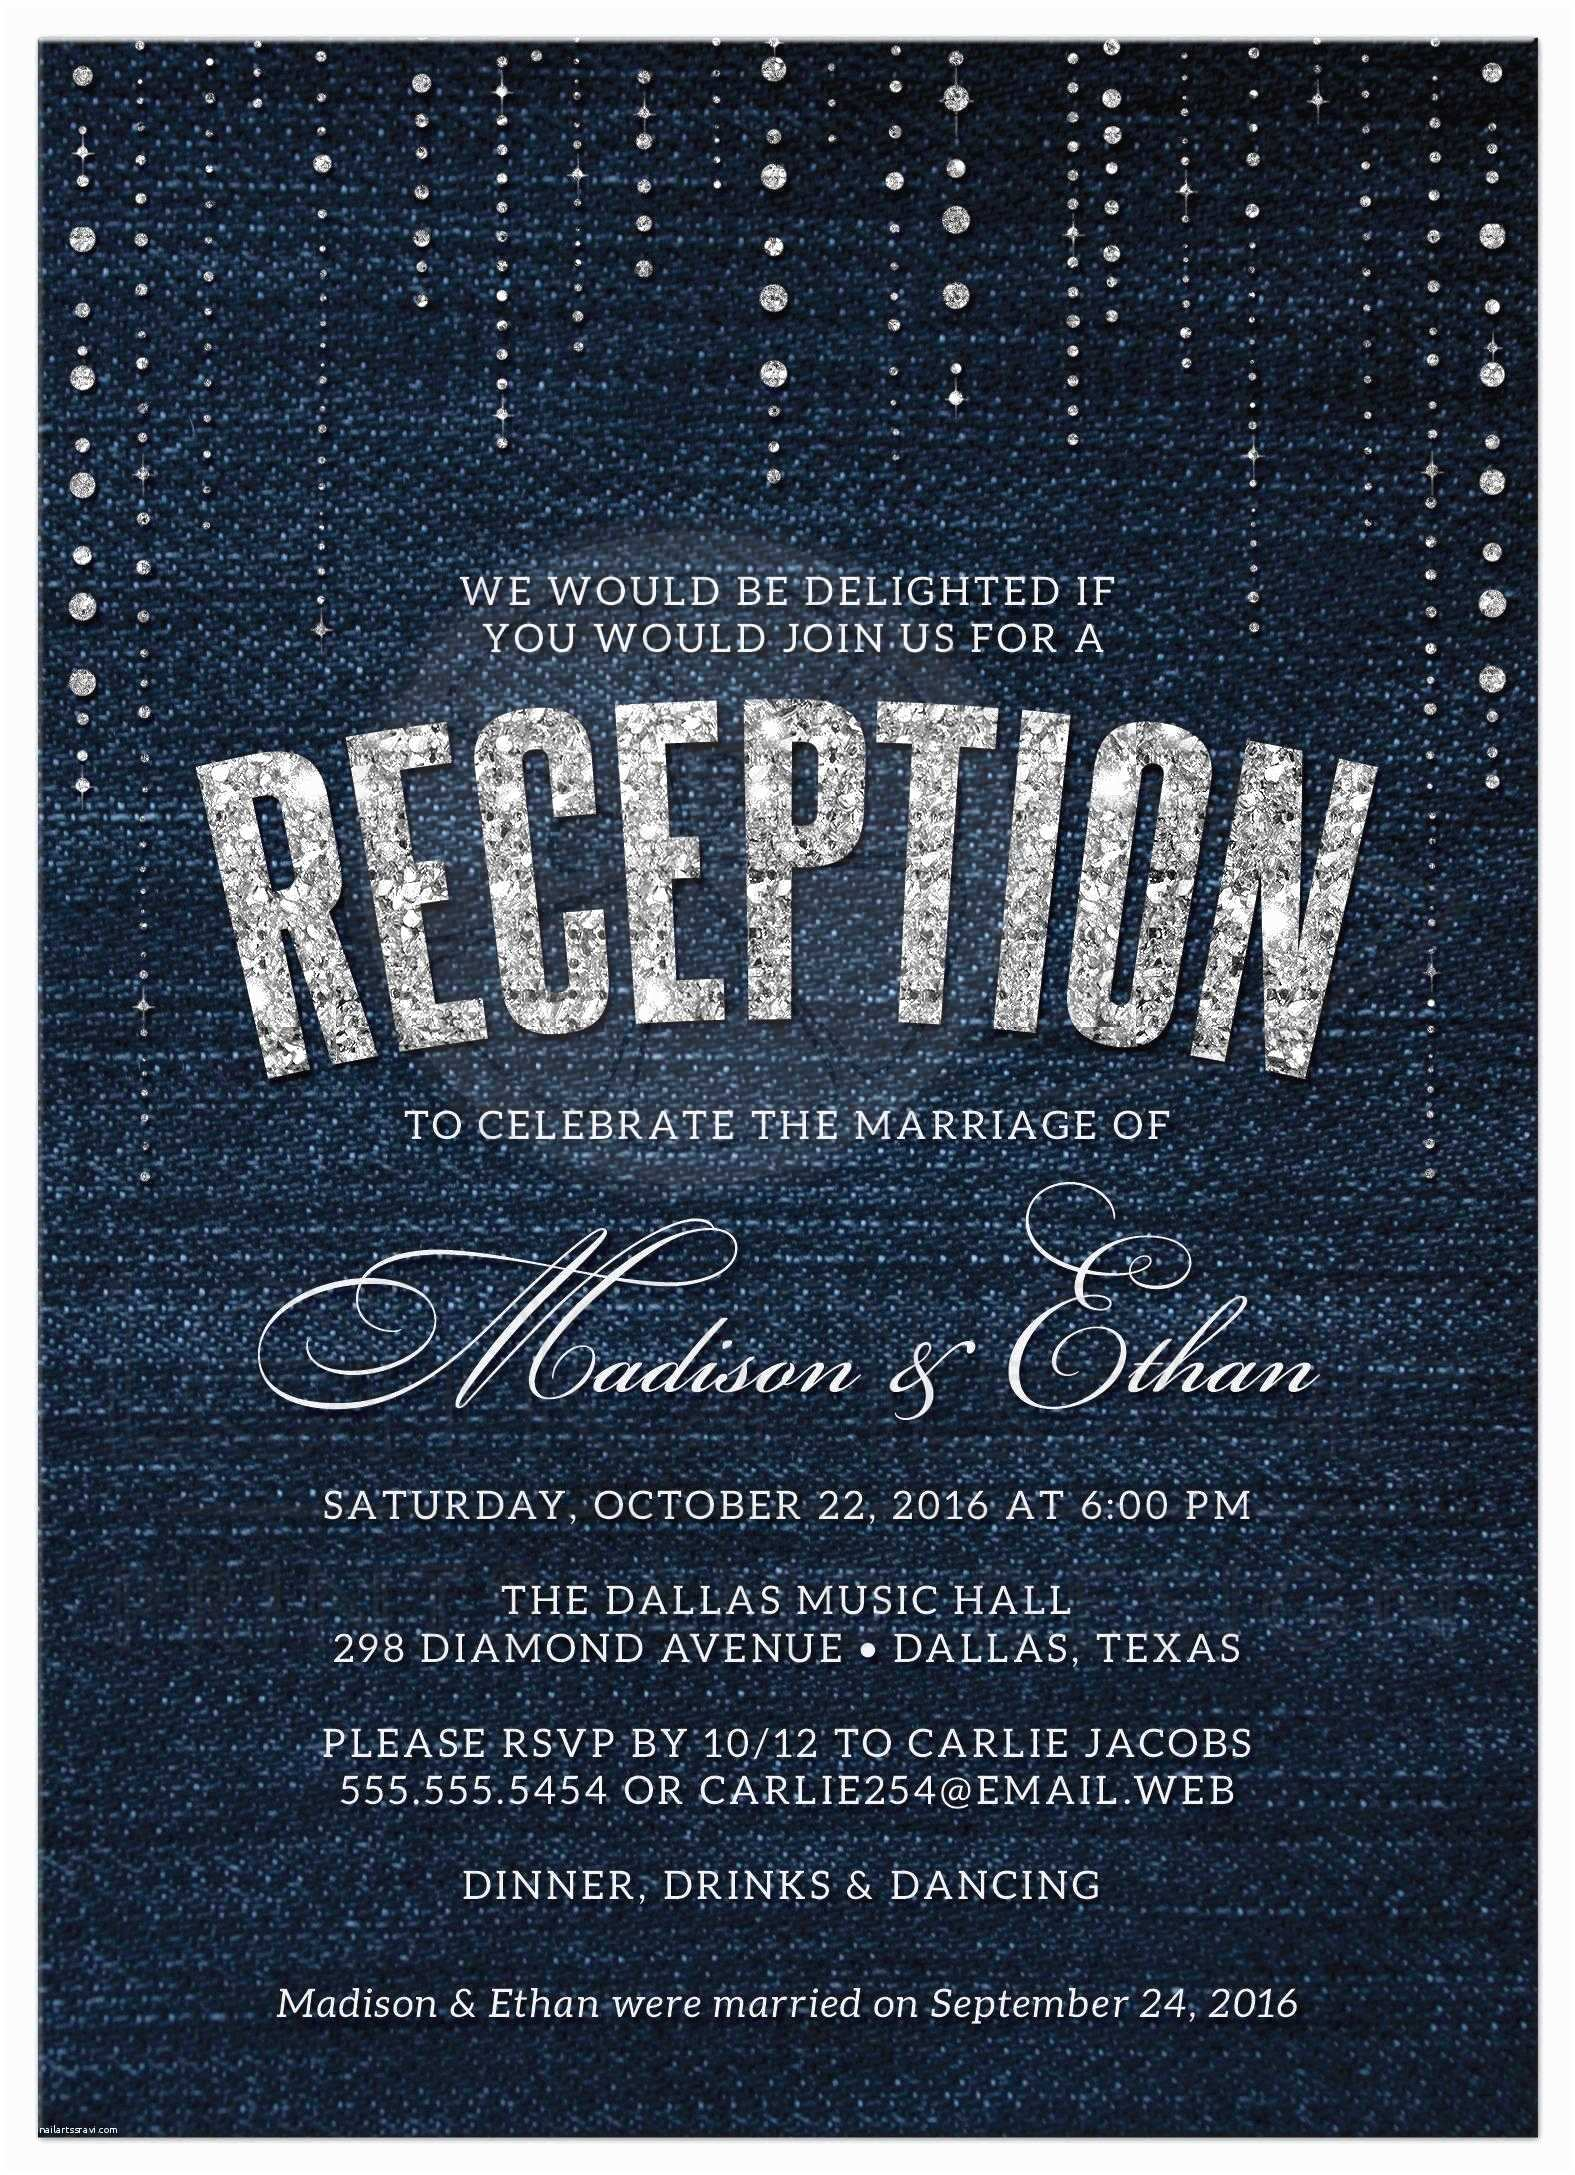 Wedding Reception Only Invitations Post Wedding Reception Ly Invitations Denim & Diamonds